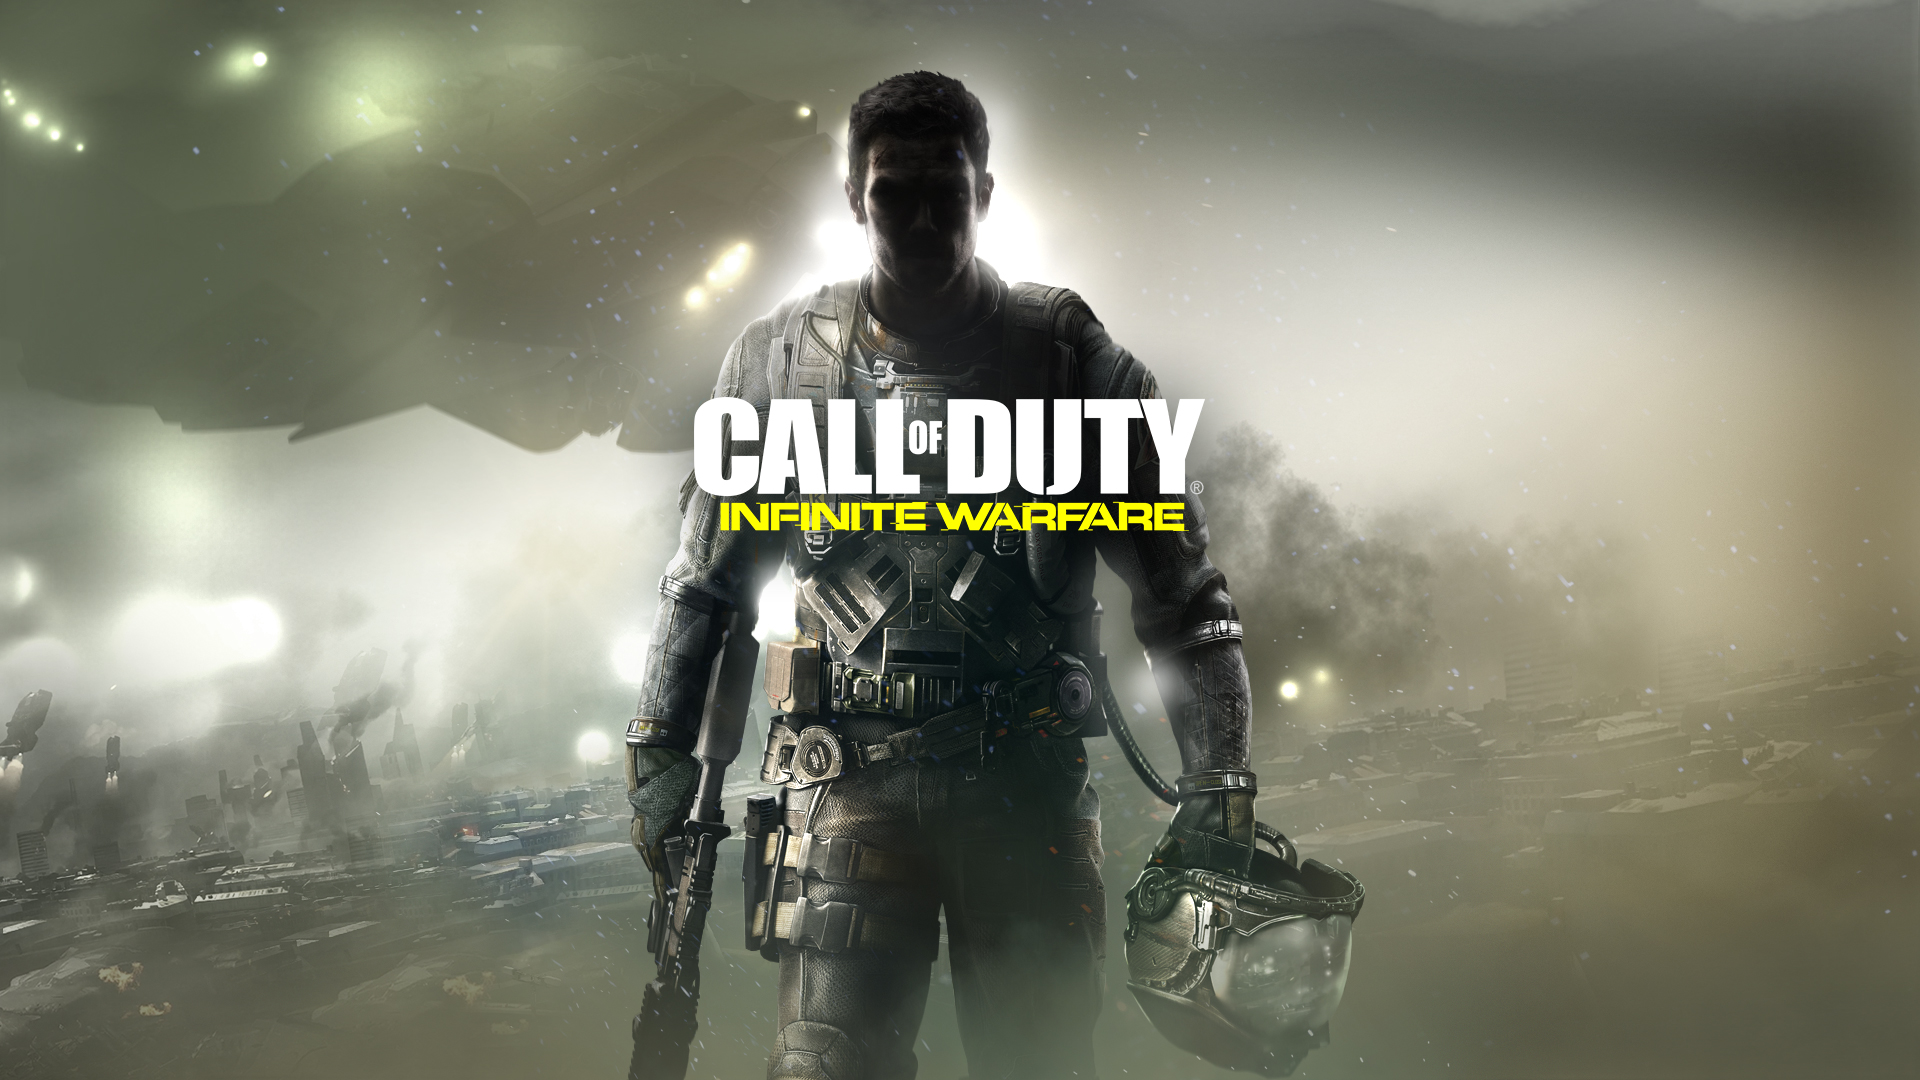 В Call of Duty: Infinite Warfare начался Хэллоуин